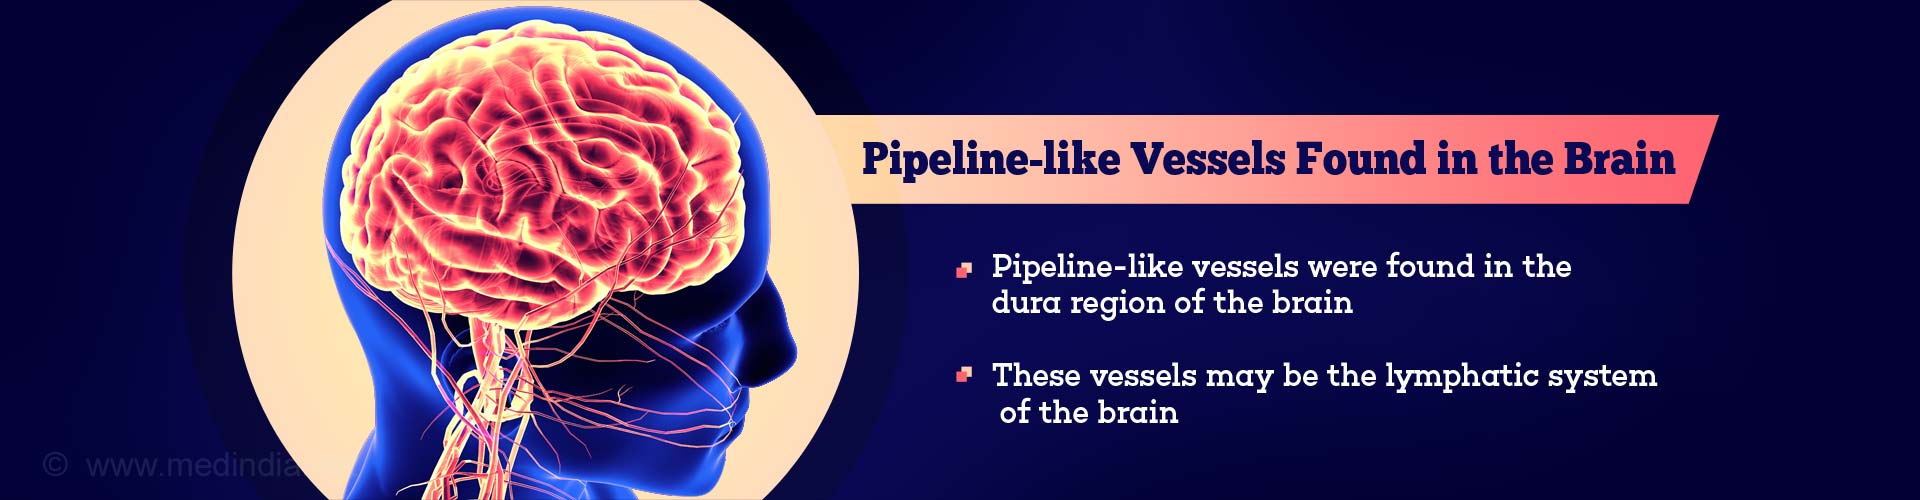 Pipeline-like Vessels Found in the Brain